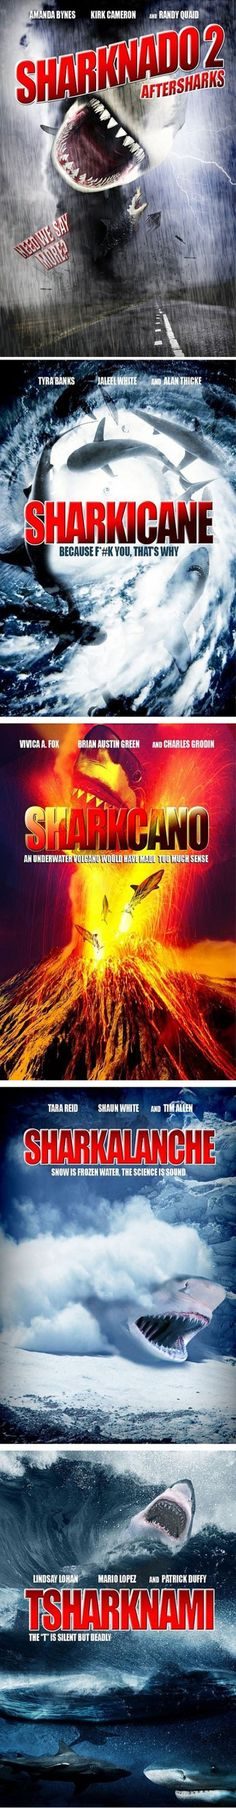 Possible sequels to Sharknado....